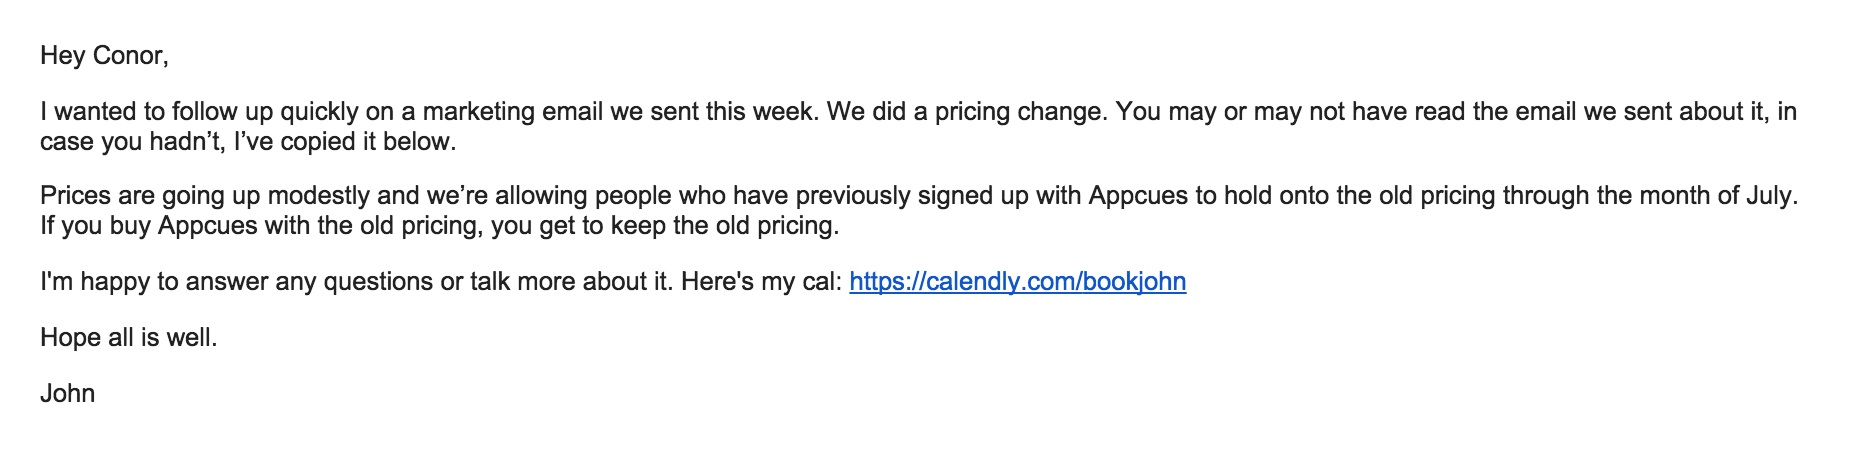 Screenshot of email that Appcues CEO personally sent to customers about pricing change